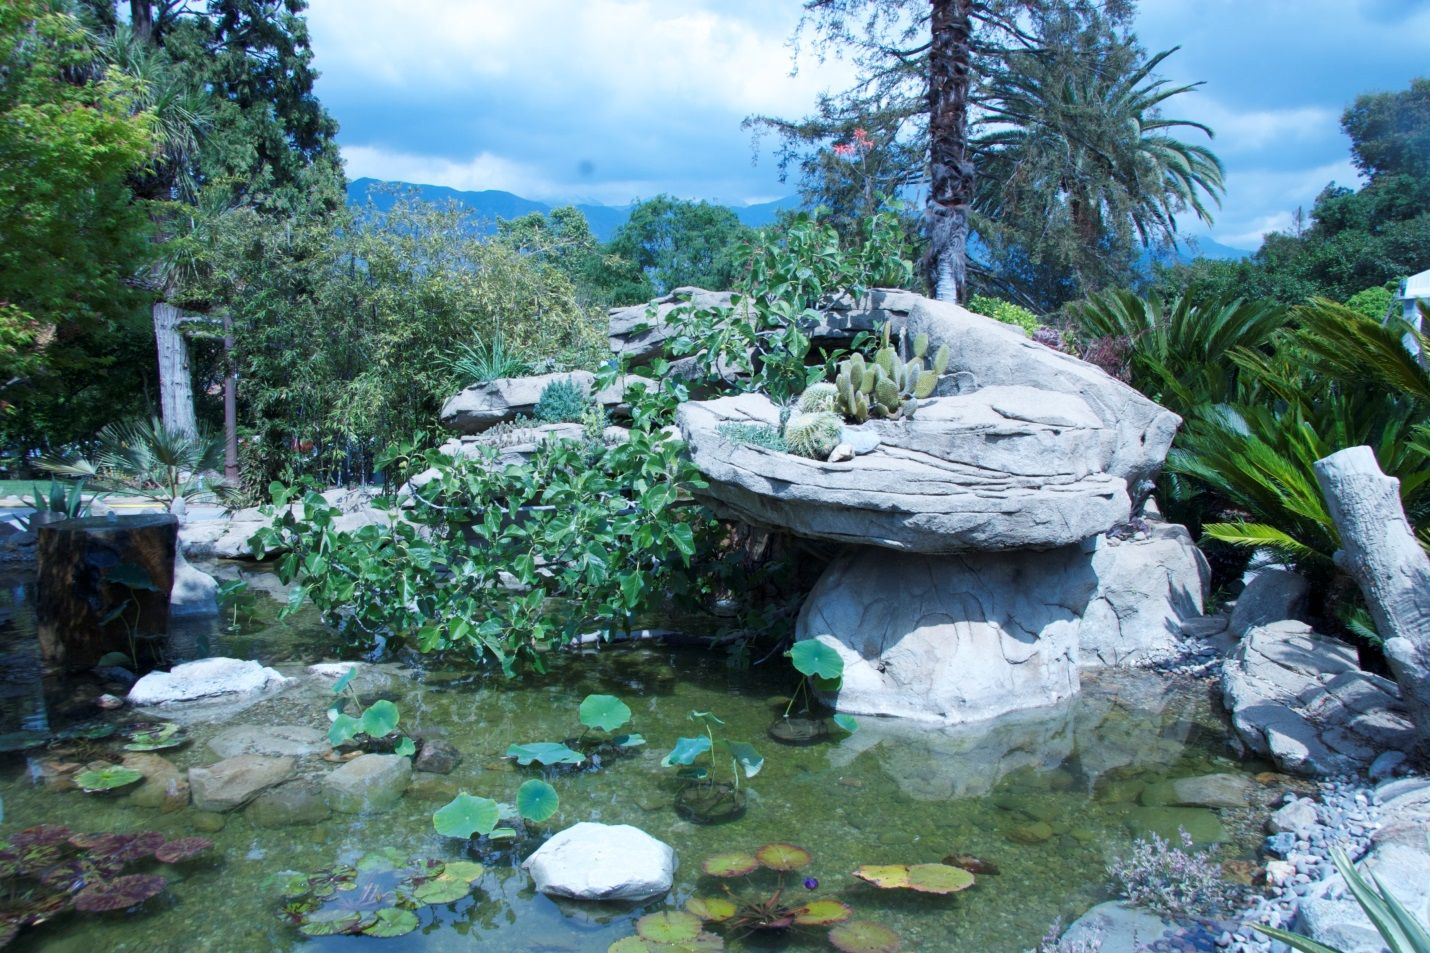 This Very Pretty Pond At The Pasadena Showcase House Of Design For The Arts  Was Refurbished By Steve Sandalis Of Mystic Water Gardens And Is Surrounded  By A ...